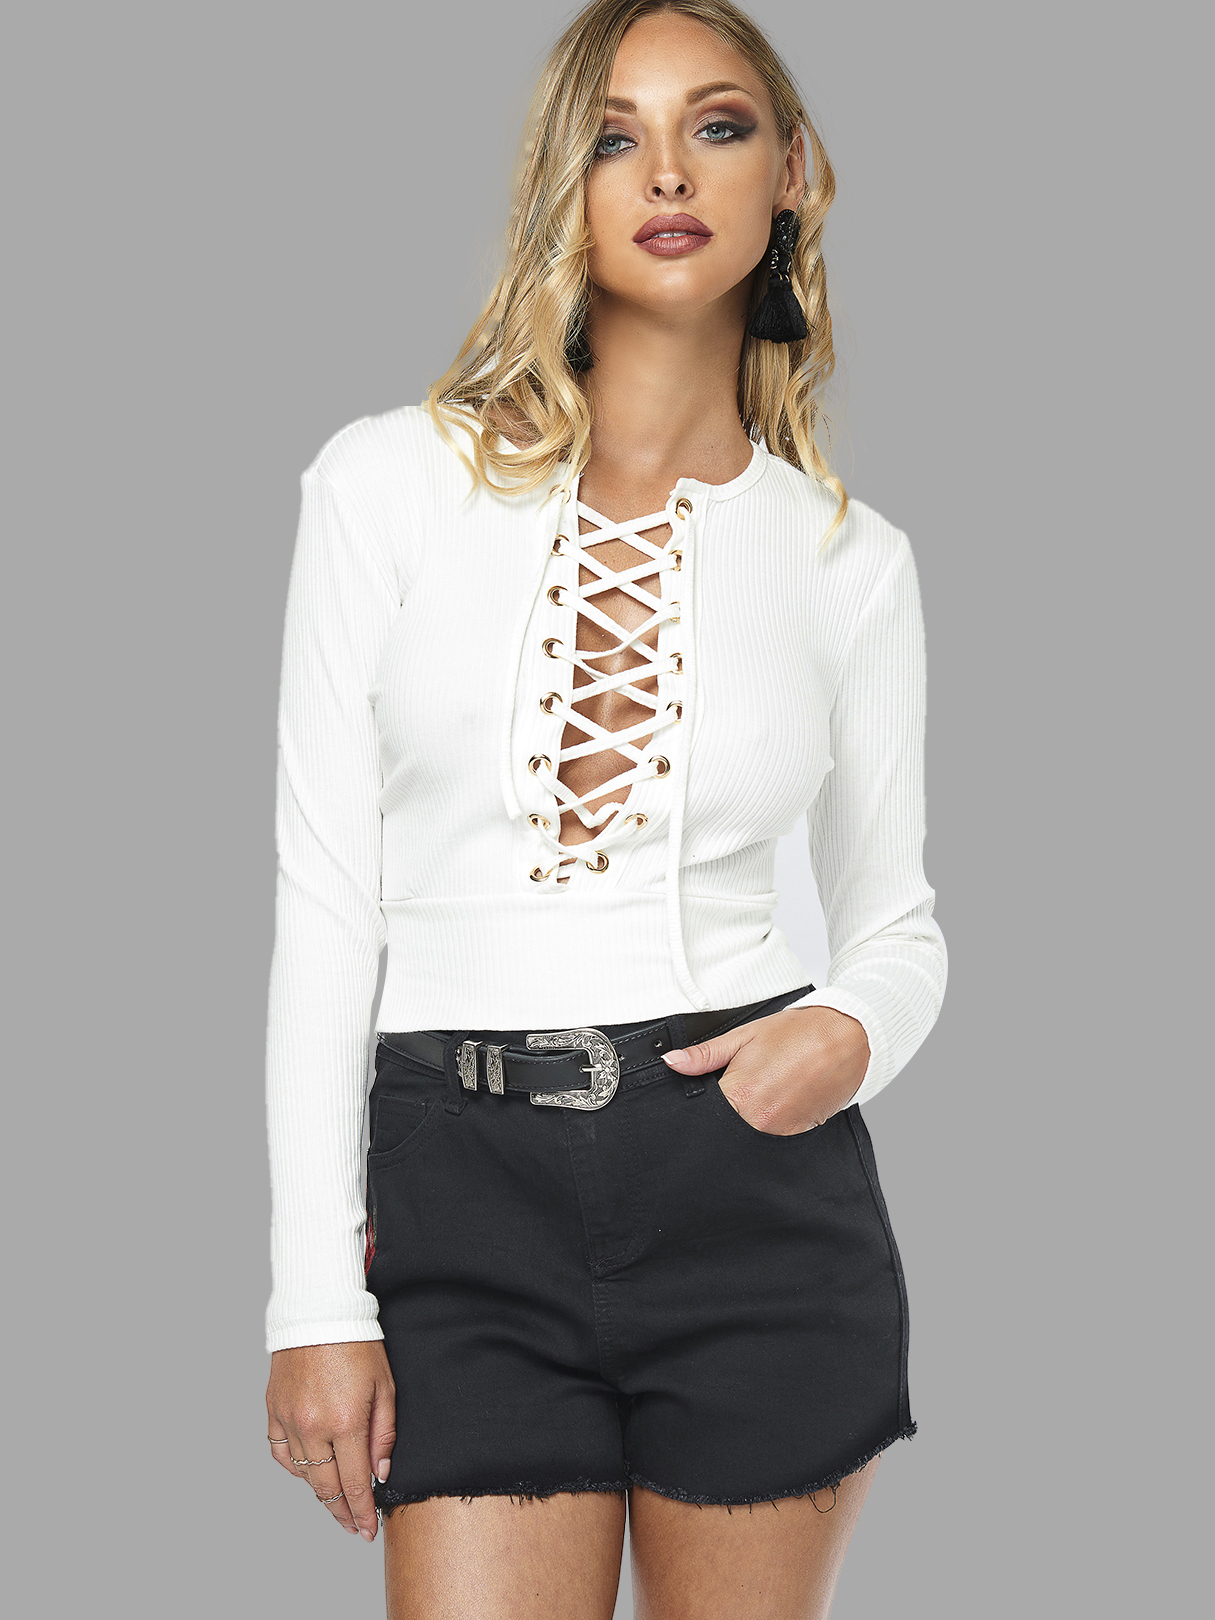 White Fashion Lace-up Crop Top With Long Sleeves white fashion lace up crop top with long sleeves